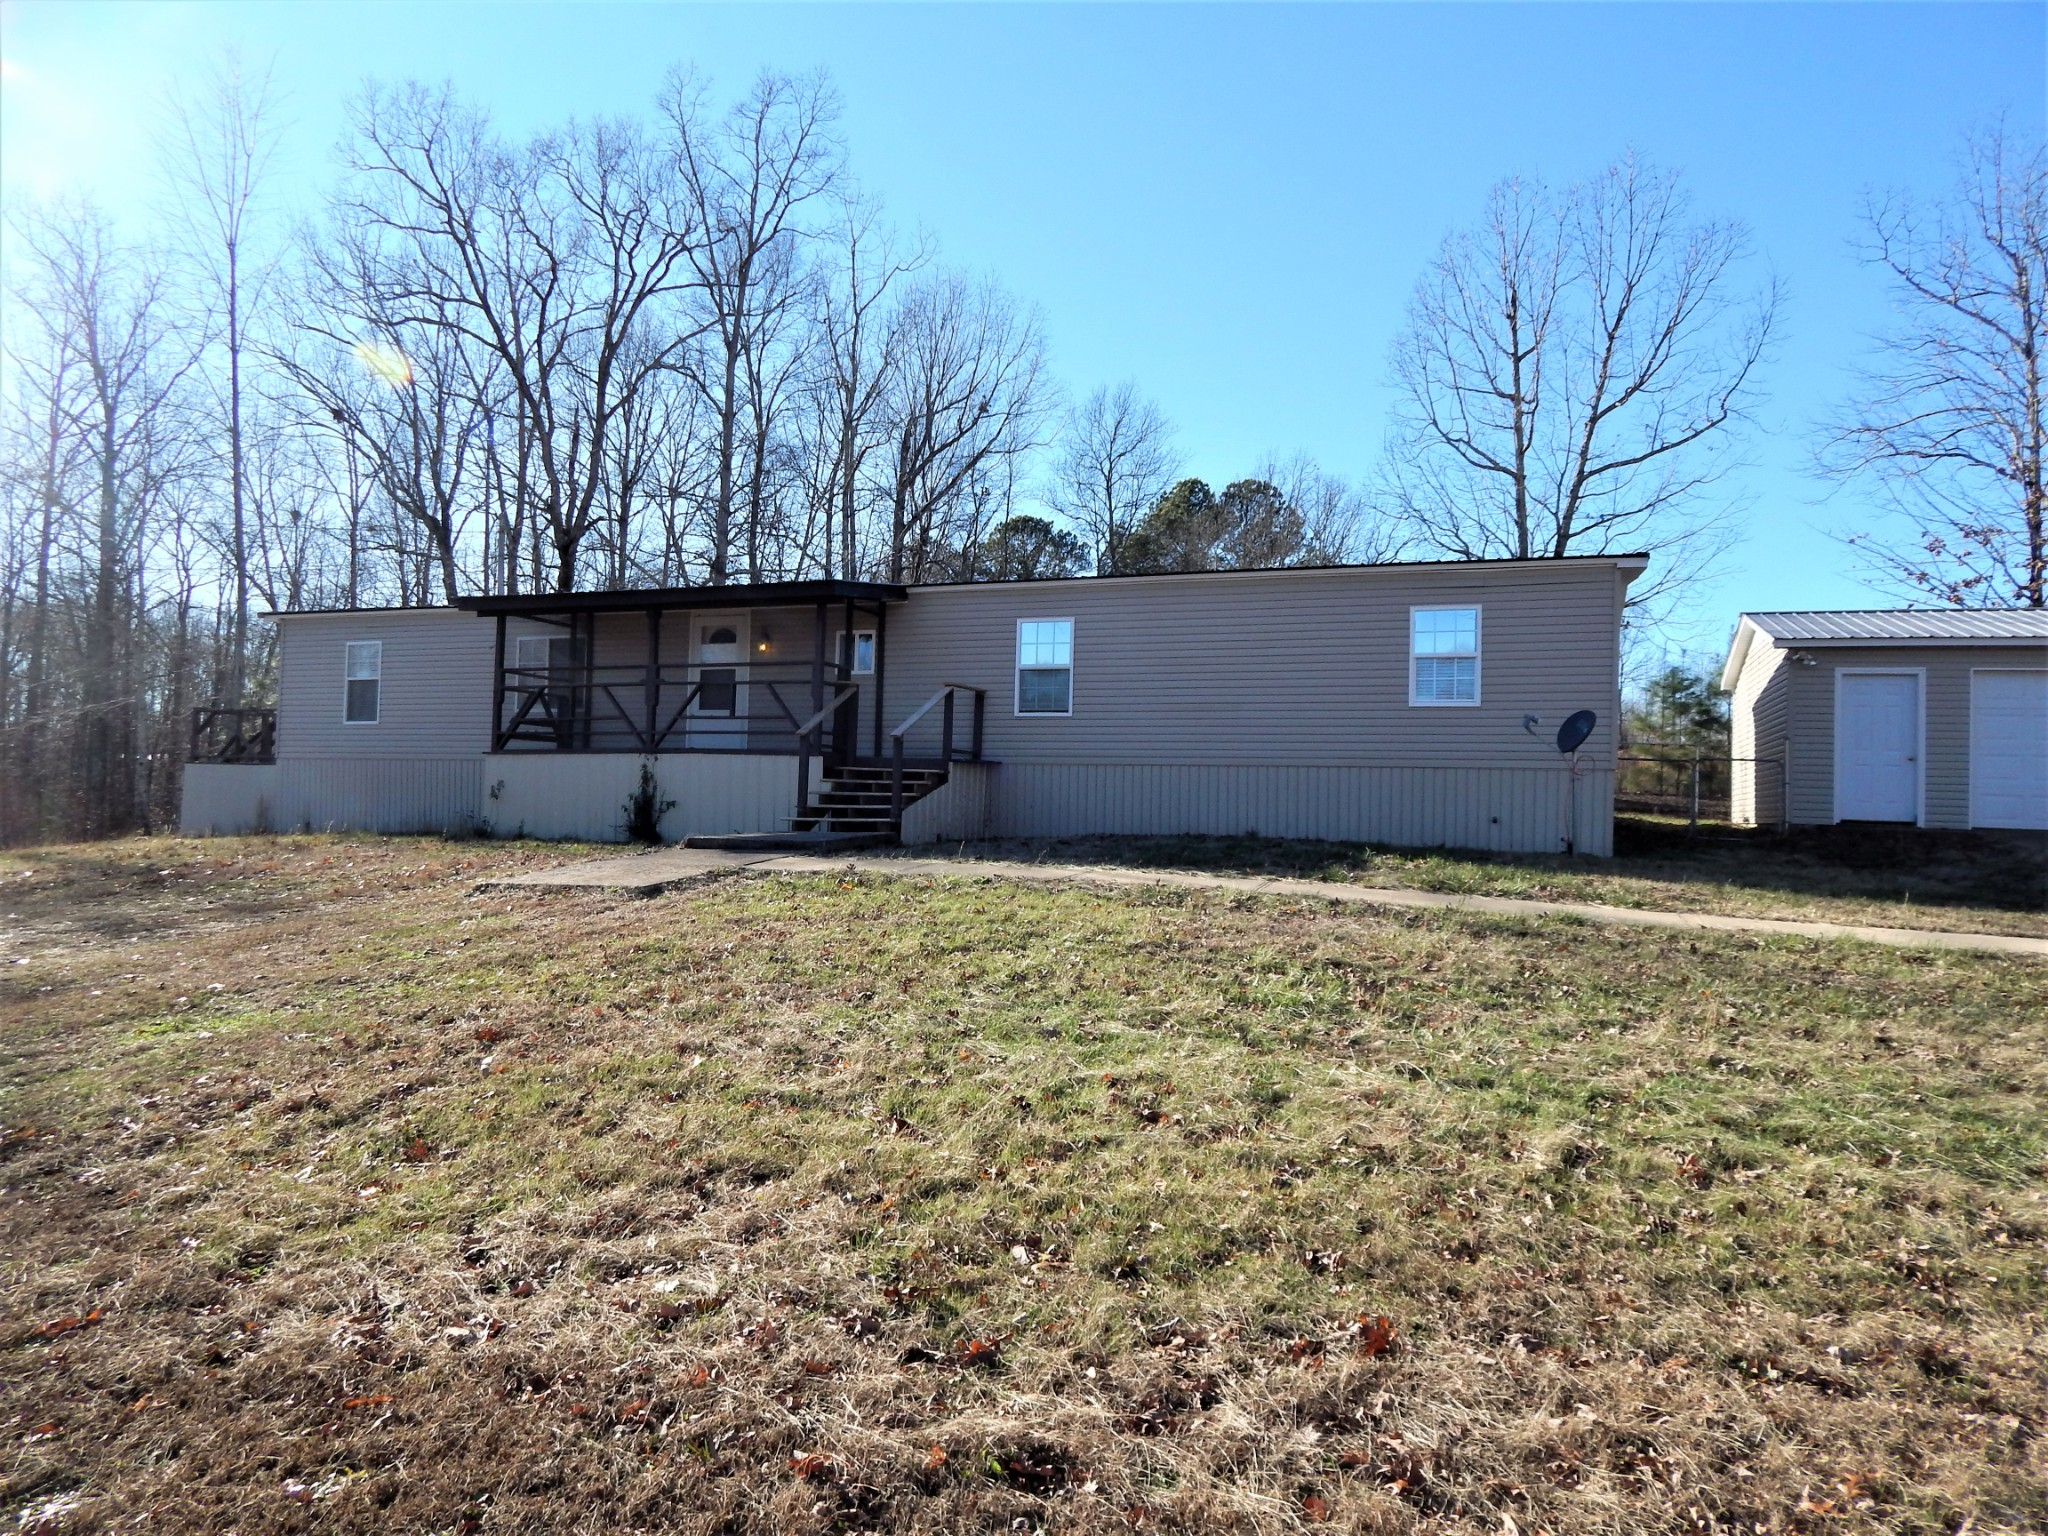 2028 Pinkley Rd, Waynesboro, TN 38485 - Waynesboro, TN real estate listing